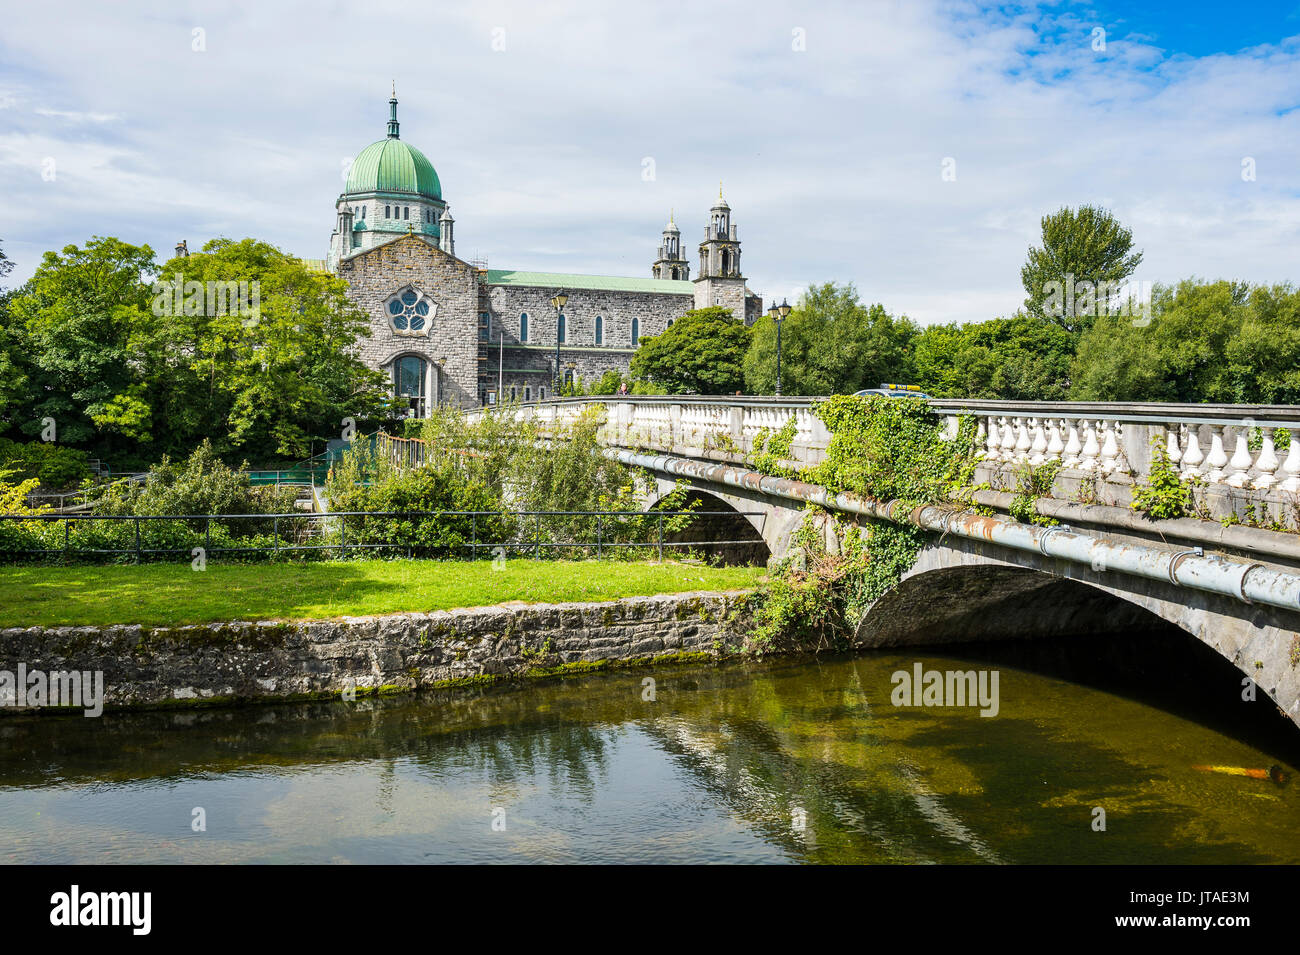 Galway cathedral, Galway, County Galway, Connacht, Republic of Ireland, Europe - Stock Image